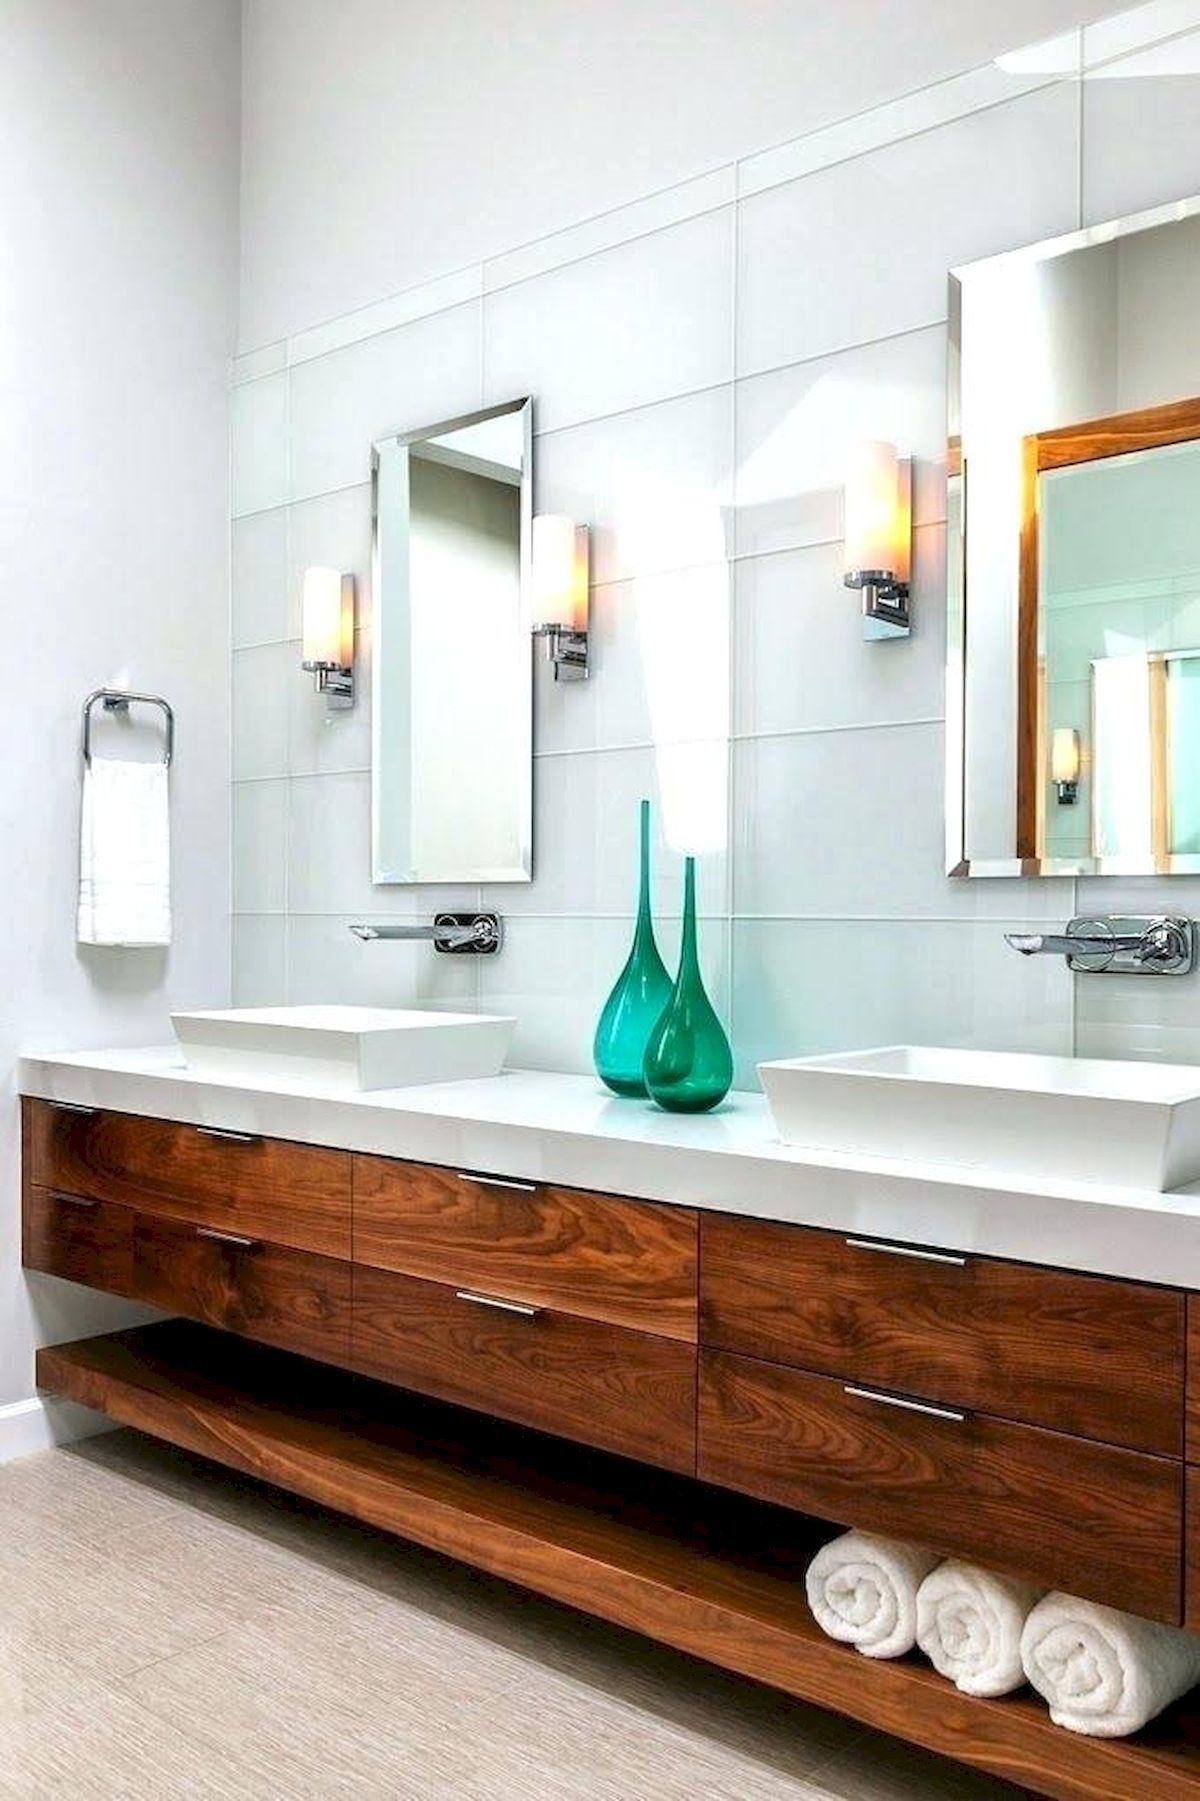 70 Modern Bathroom Cabinets Ideas Decorations And Remodel (19)